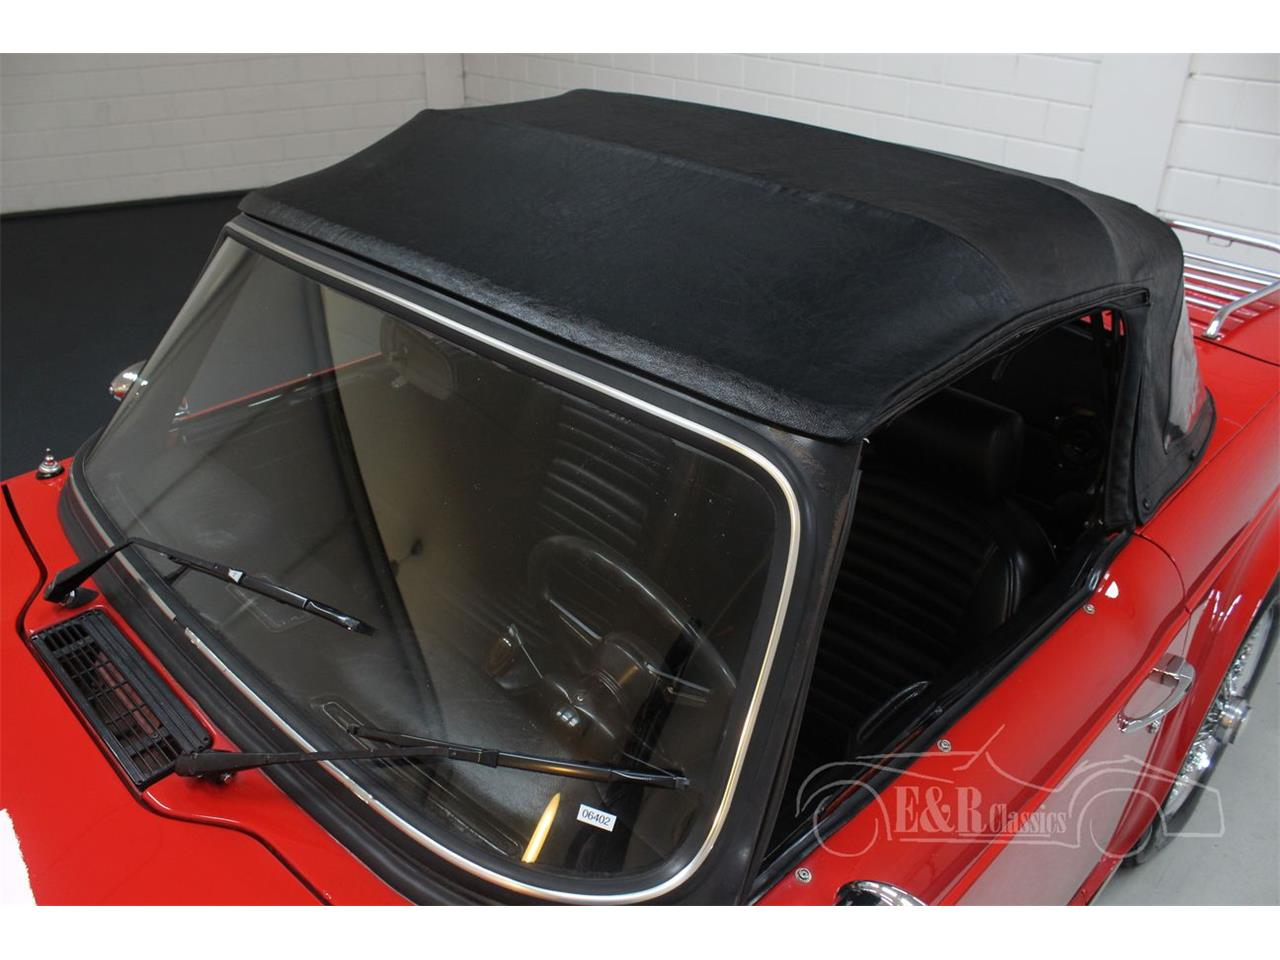 Large Picture of Classic 1973 Triumph TR6 located in Waalwijk Noord Brabant - $25,800.00 Offered by E & R Classics - PWMQ